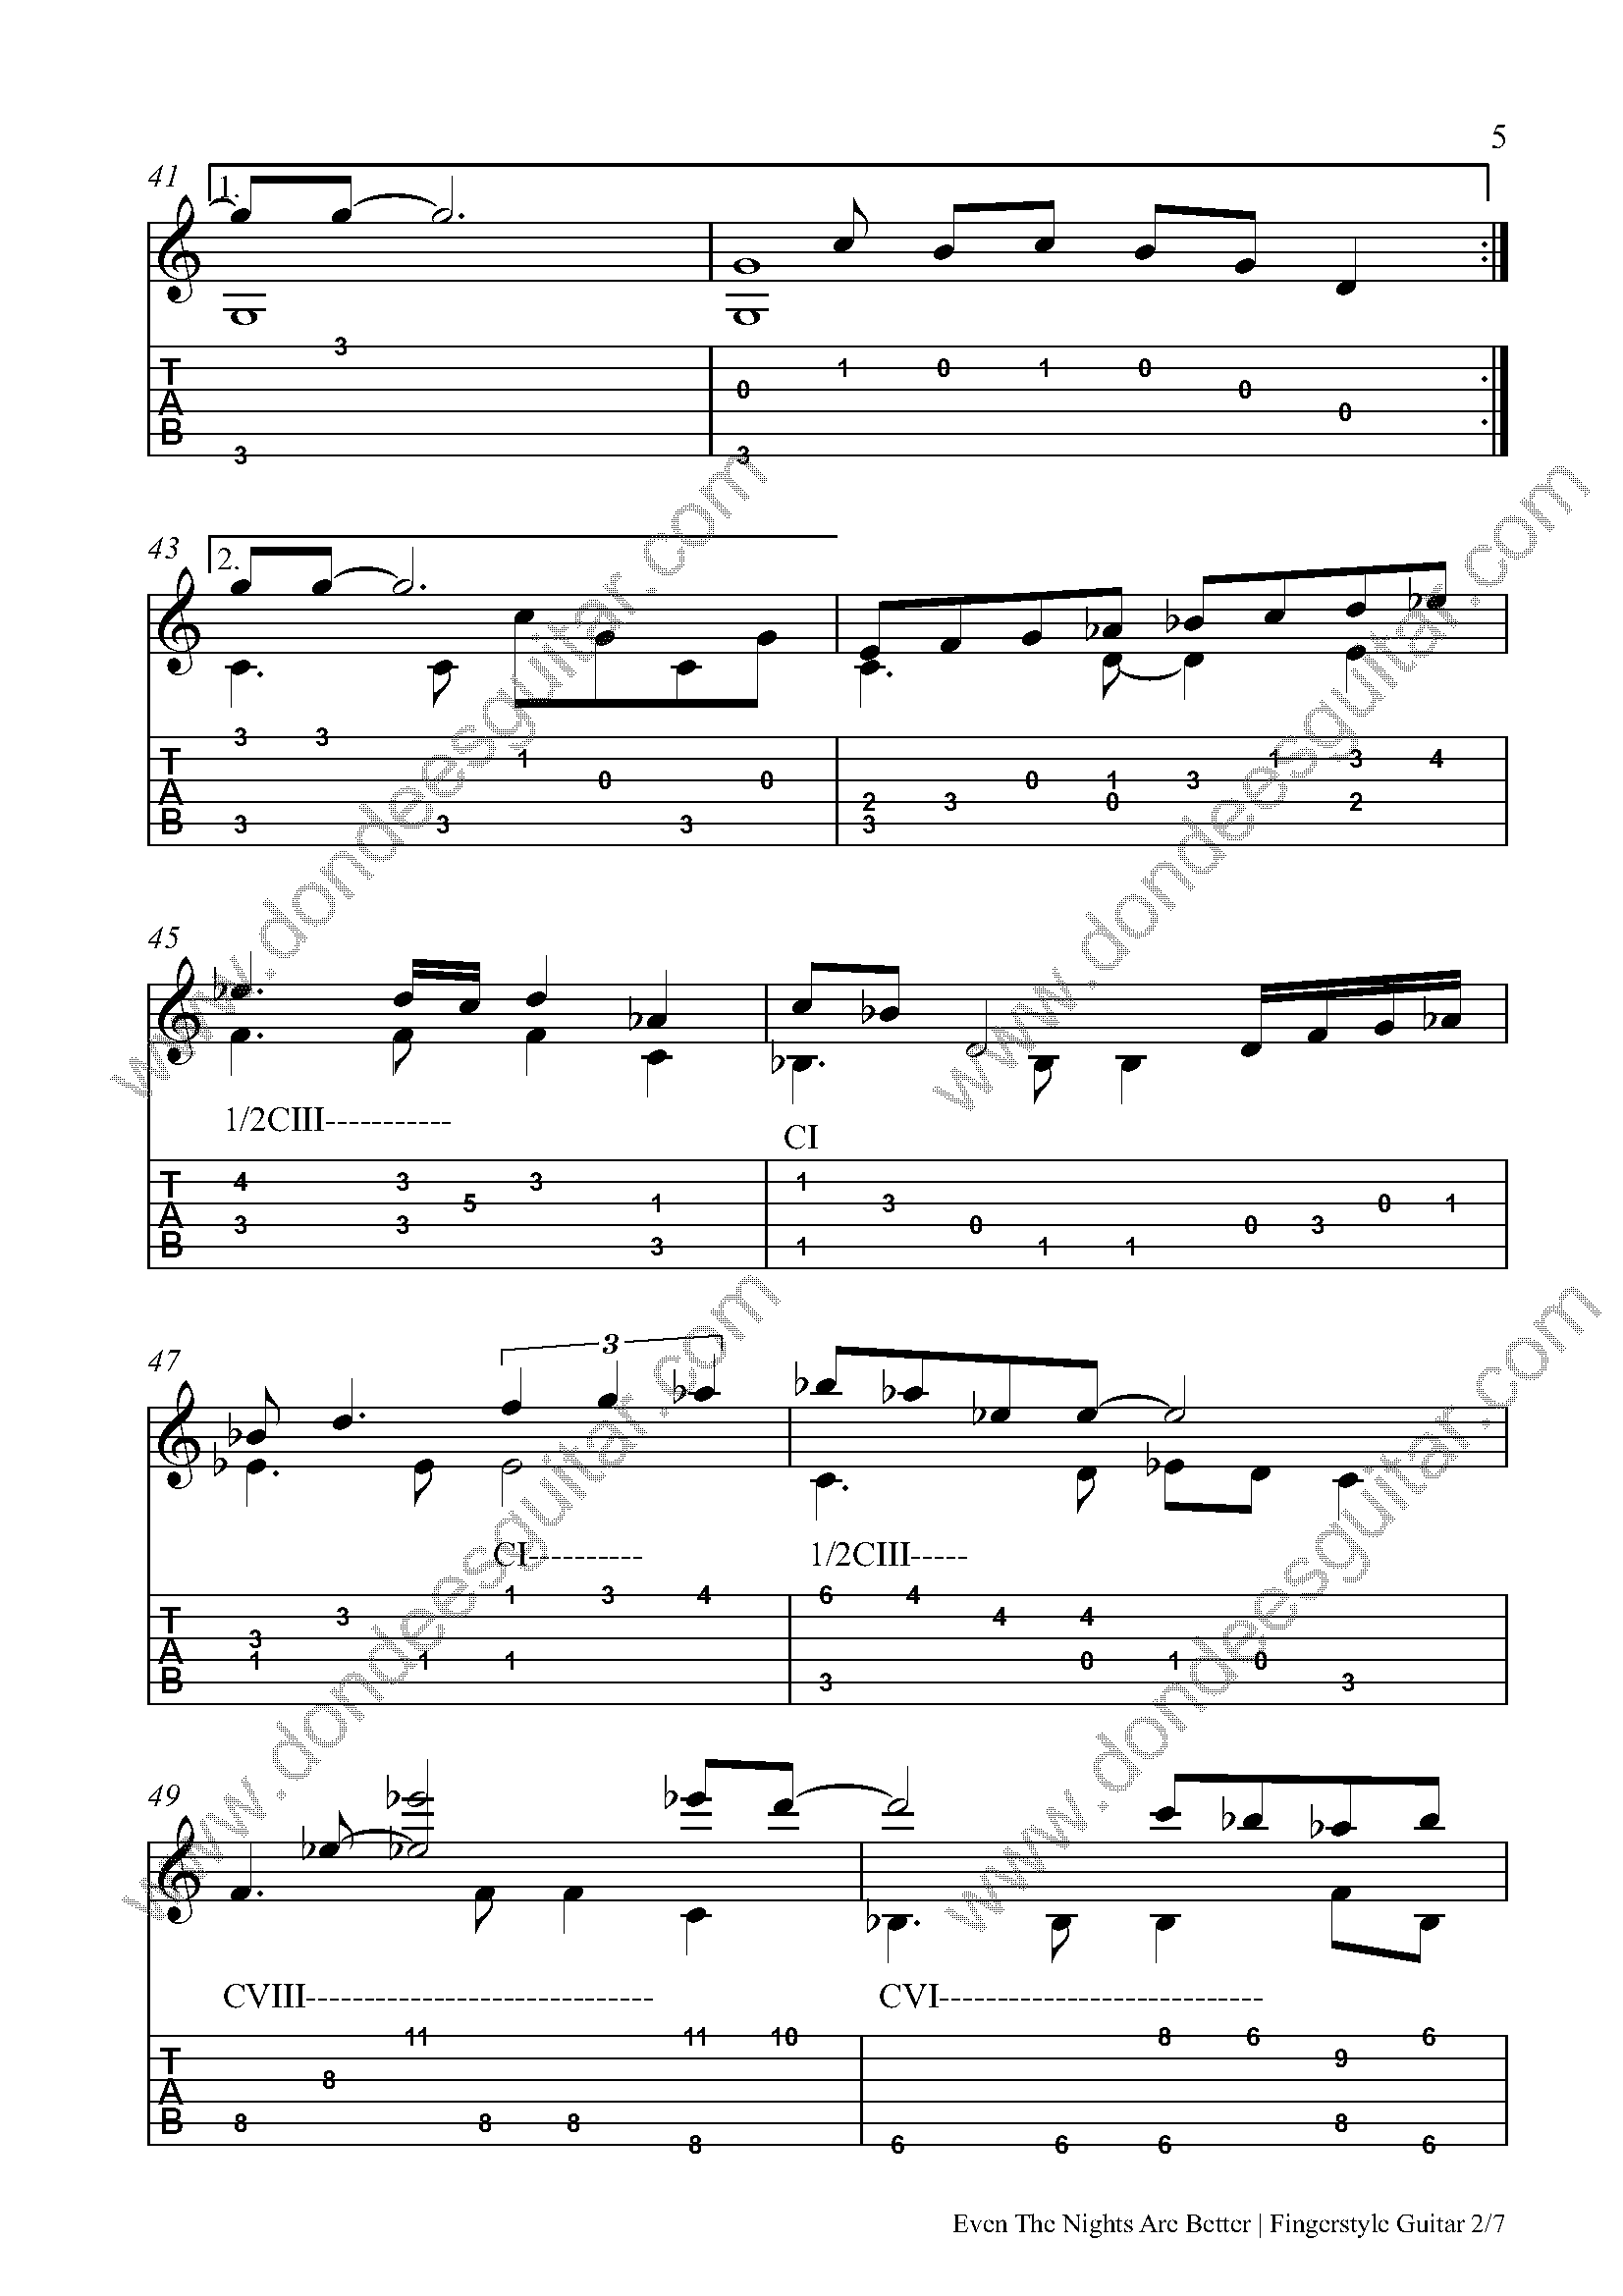 Even The Nights Are Better Fingerstyle Tabs